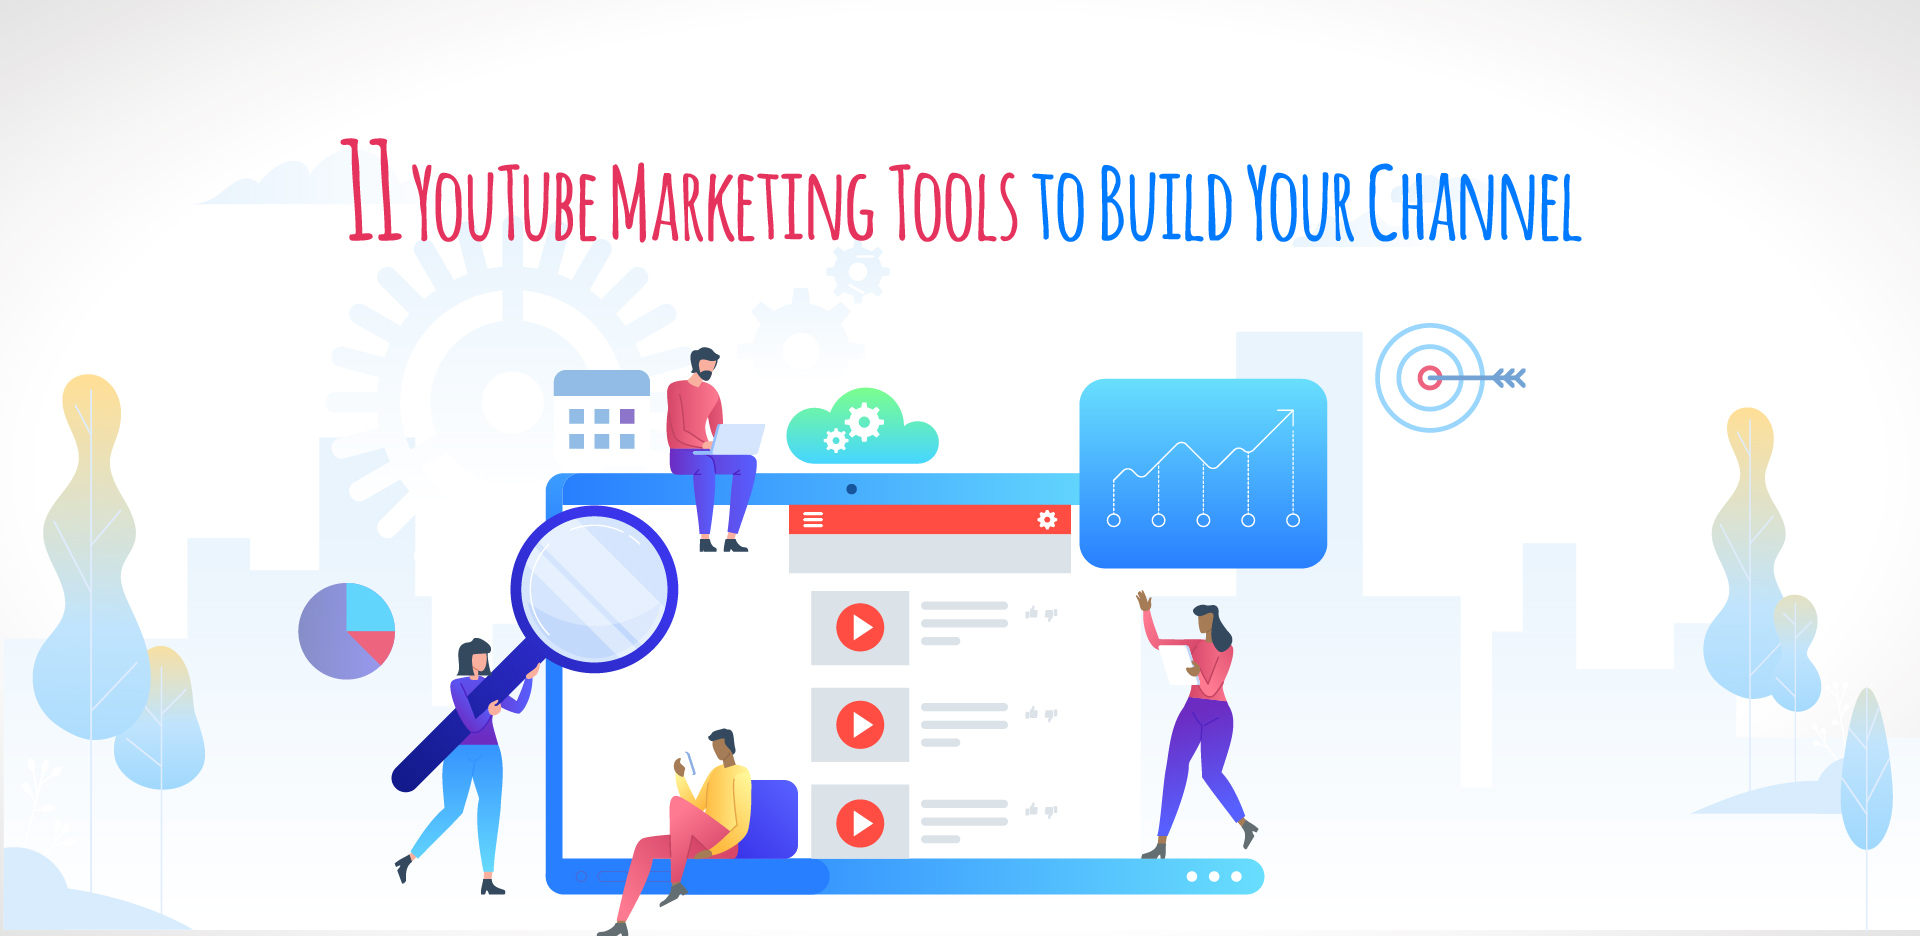 11 YouTube marketing tools to build your channel